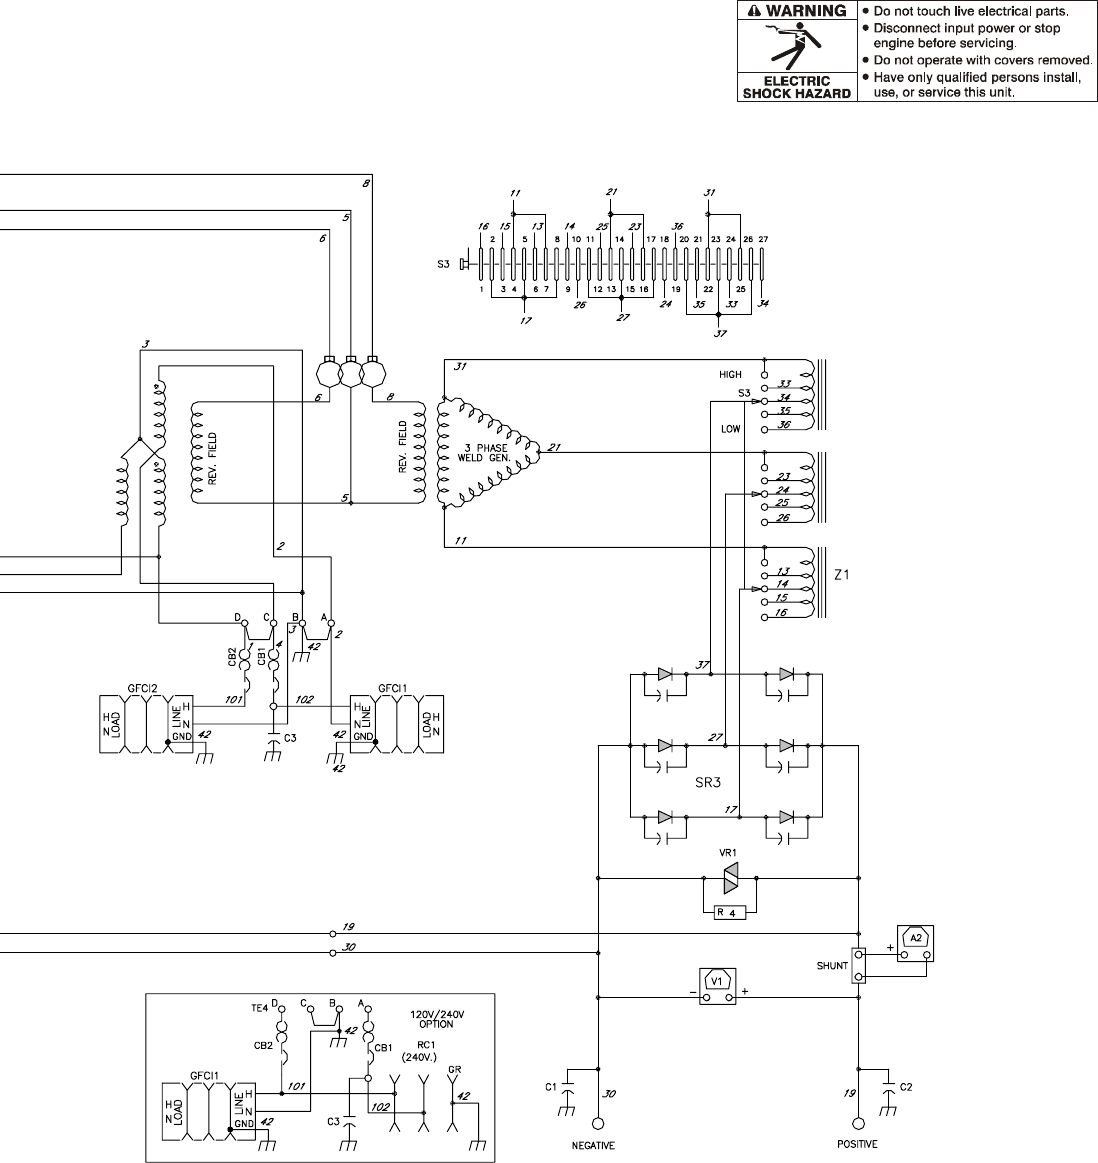 Miller Electric Big Blue 600d Users Manual Maxstar 200 Wiring Diagram Om 481 Page 31